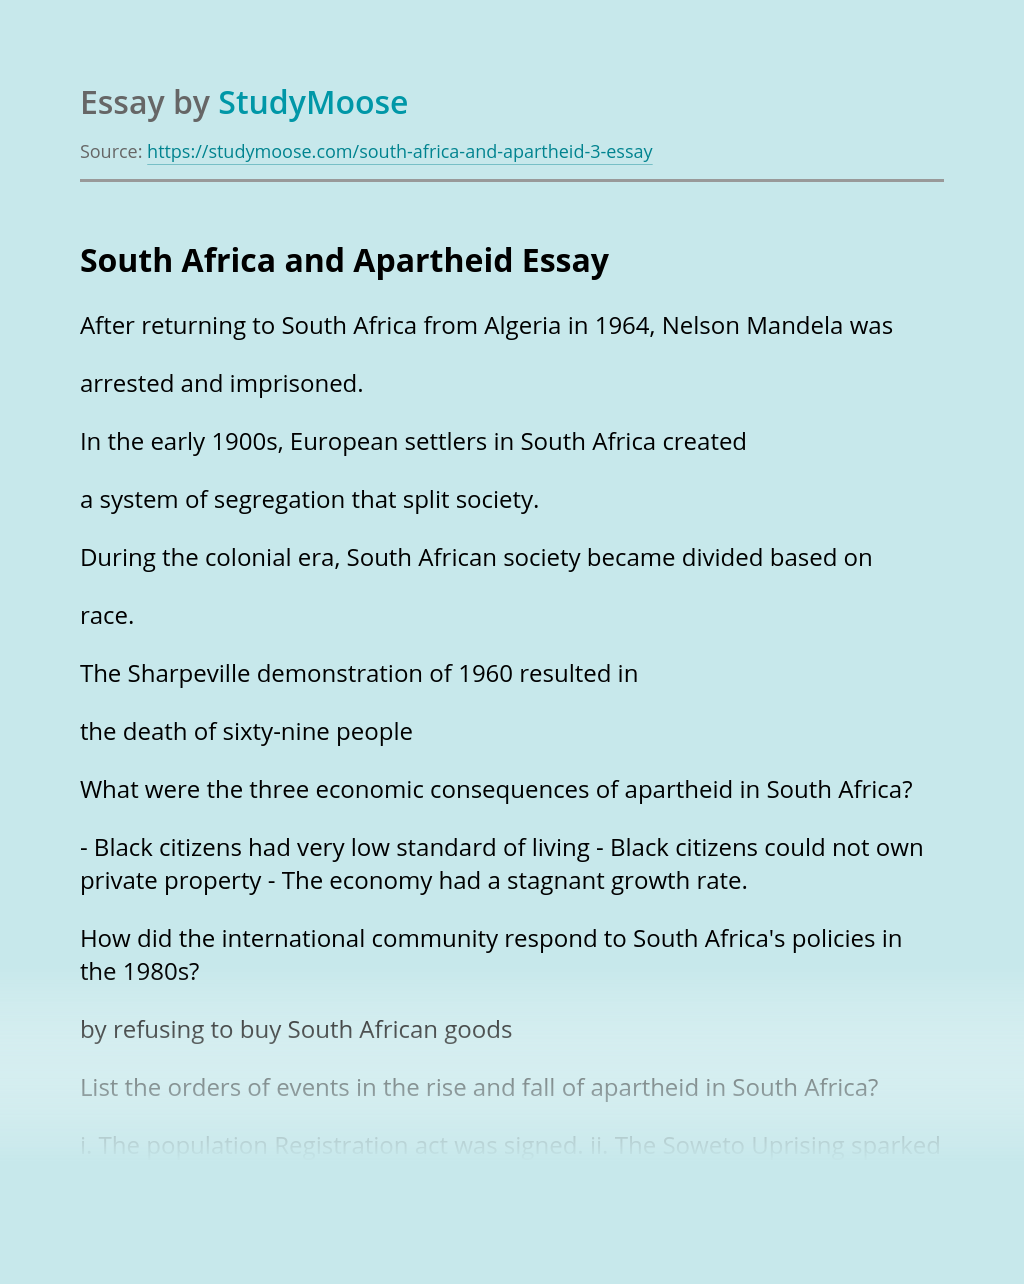 South Africa and Apartheid History Test Answers